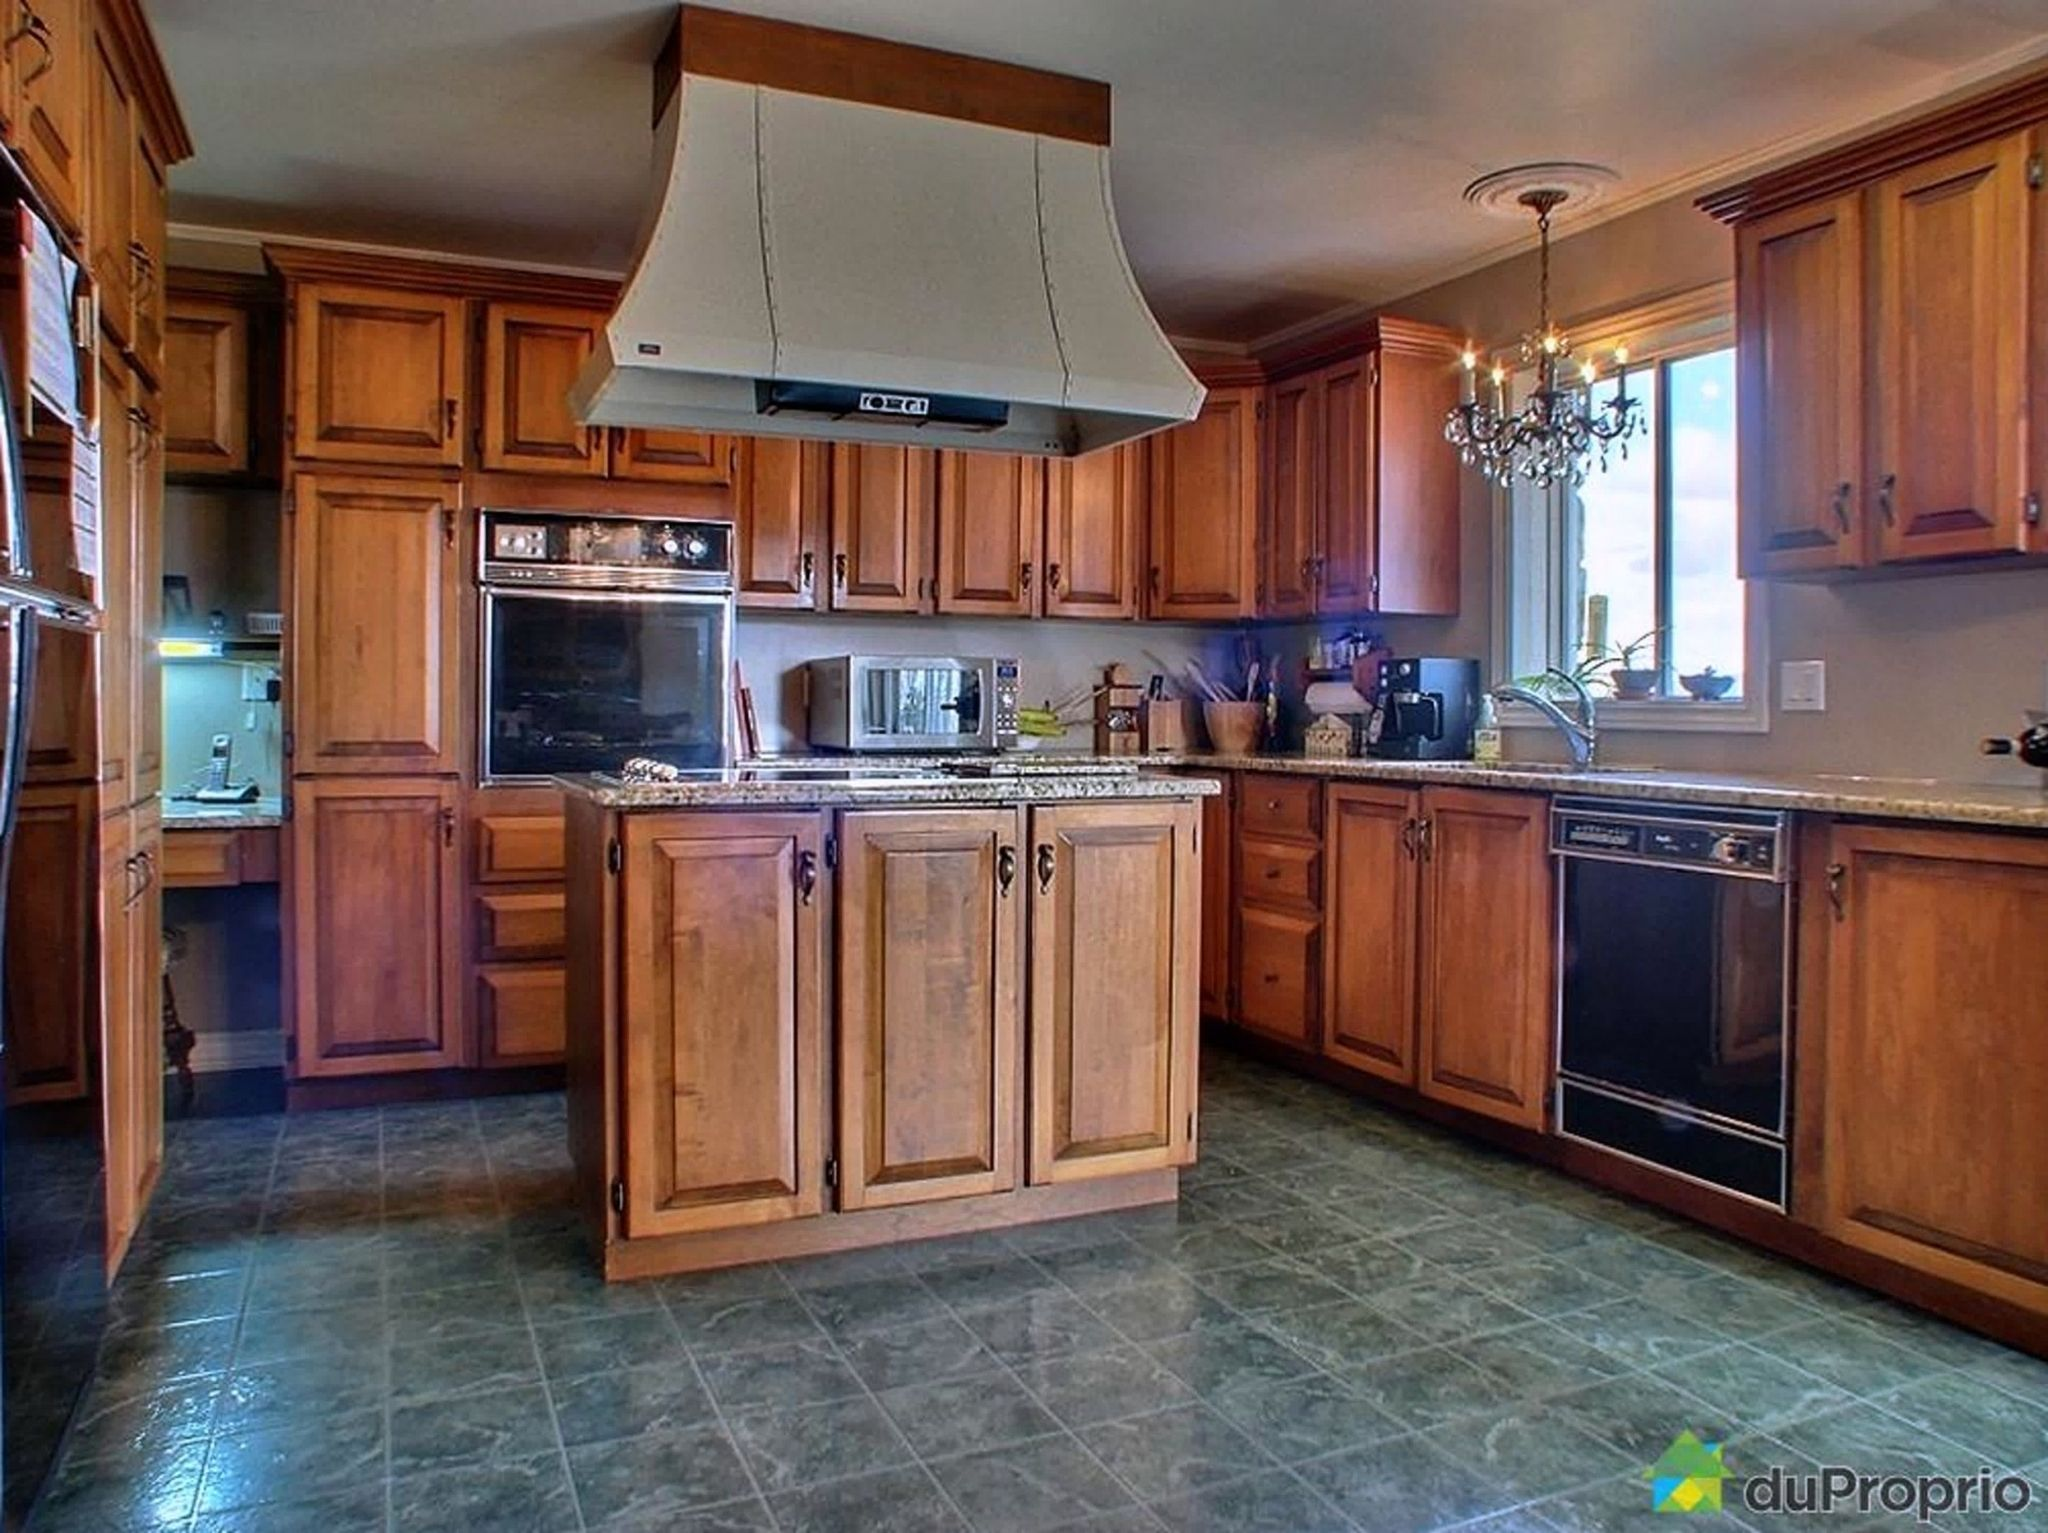 used kitchen cabinets seattle kitchen nook lighting ideas Check